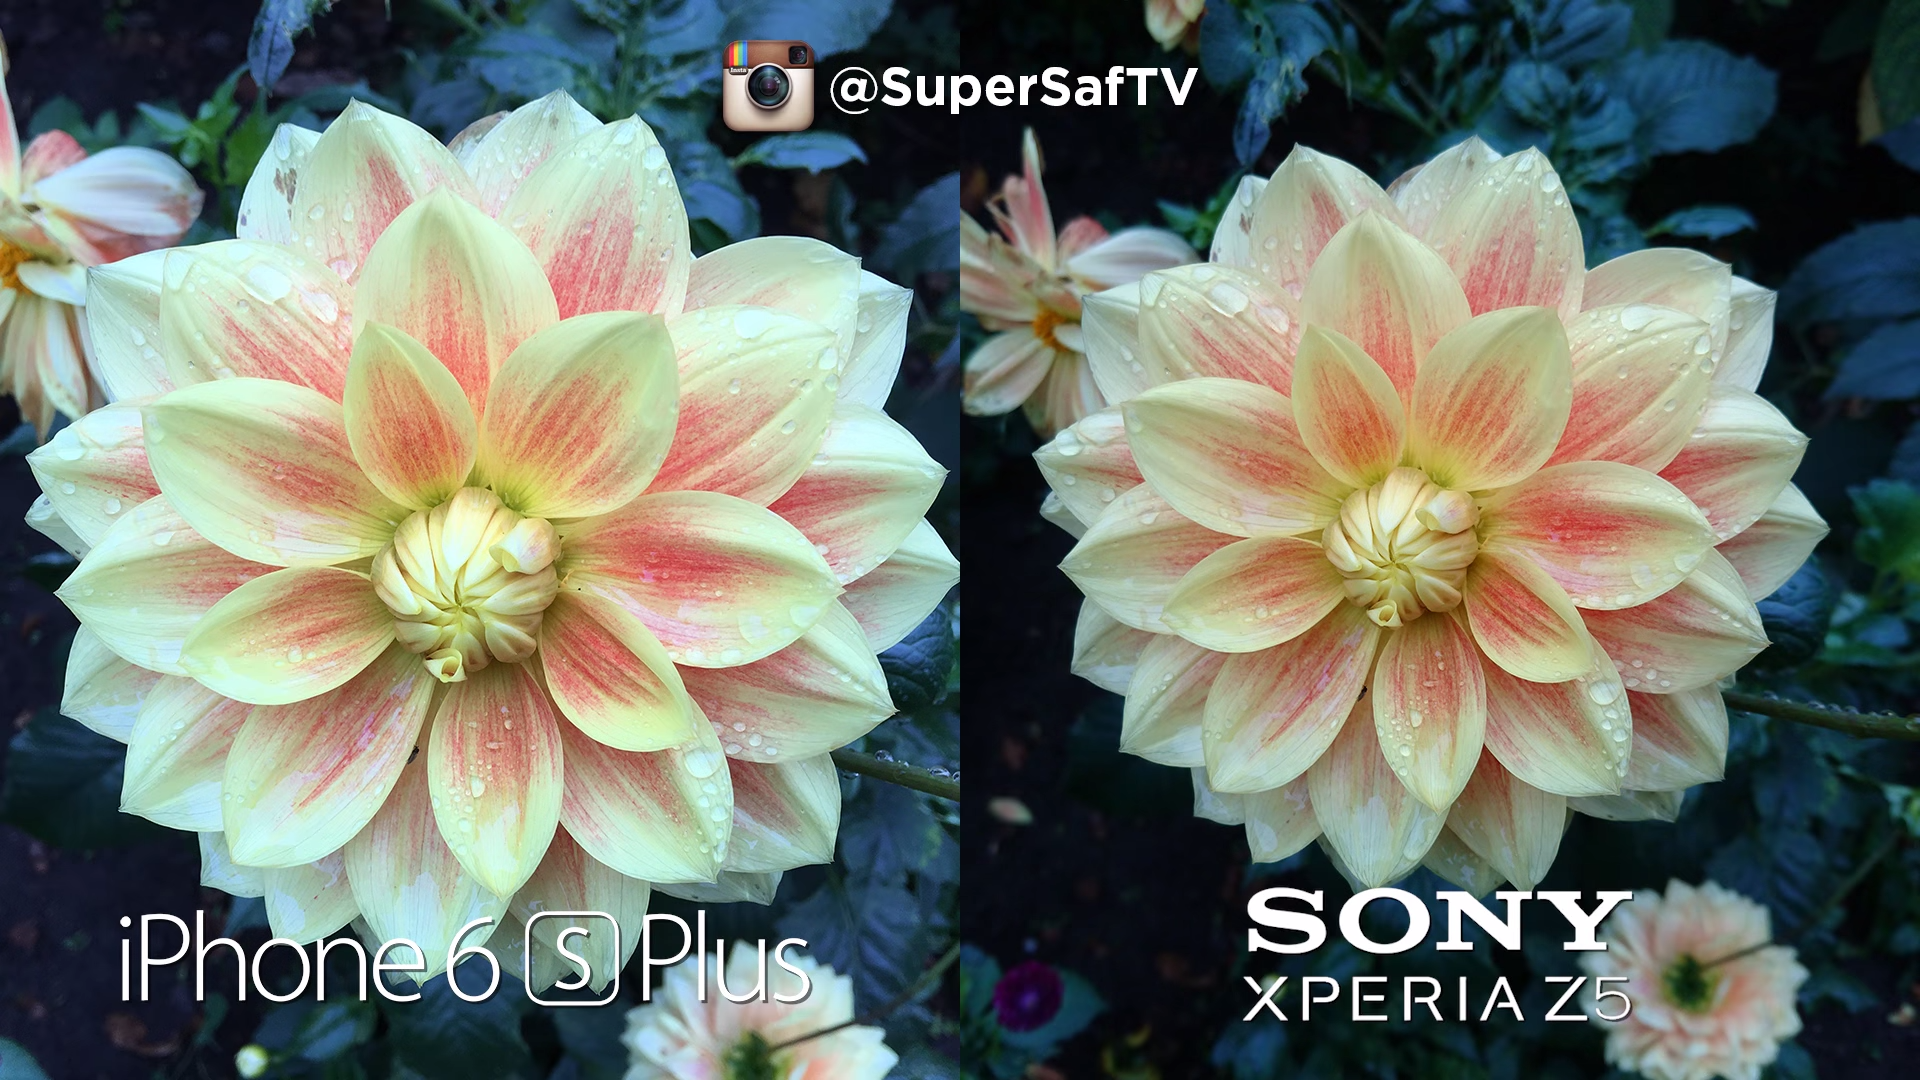 Xperia z5 vs iPhone 6s plus (2)